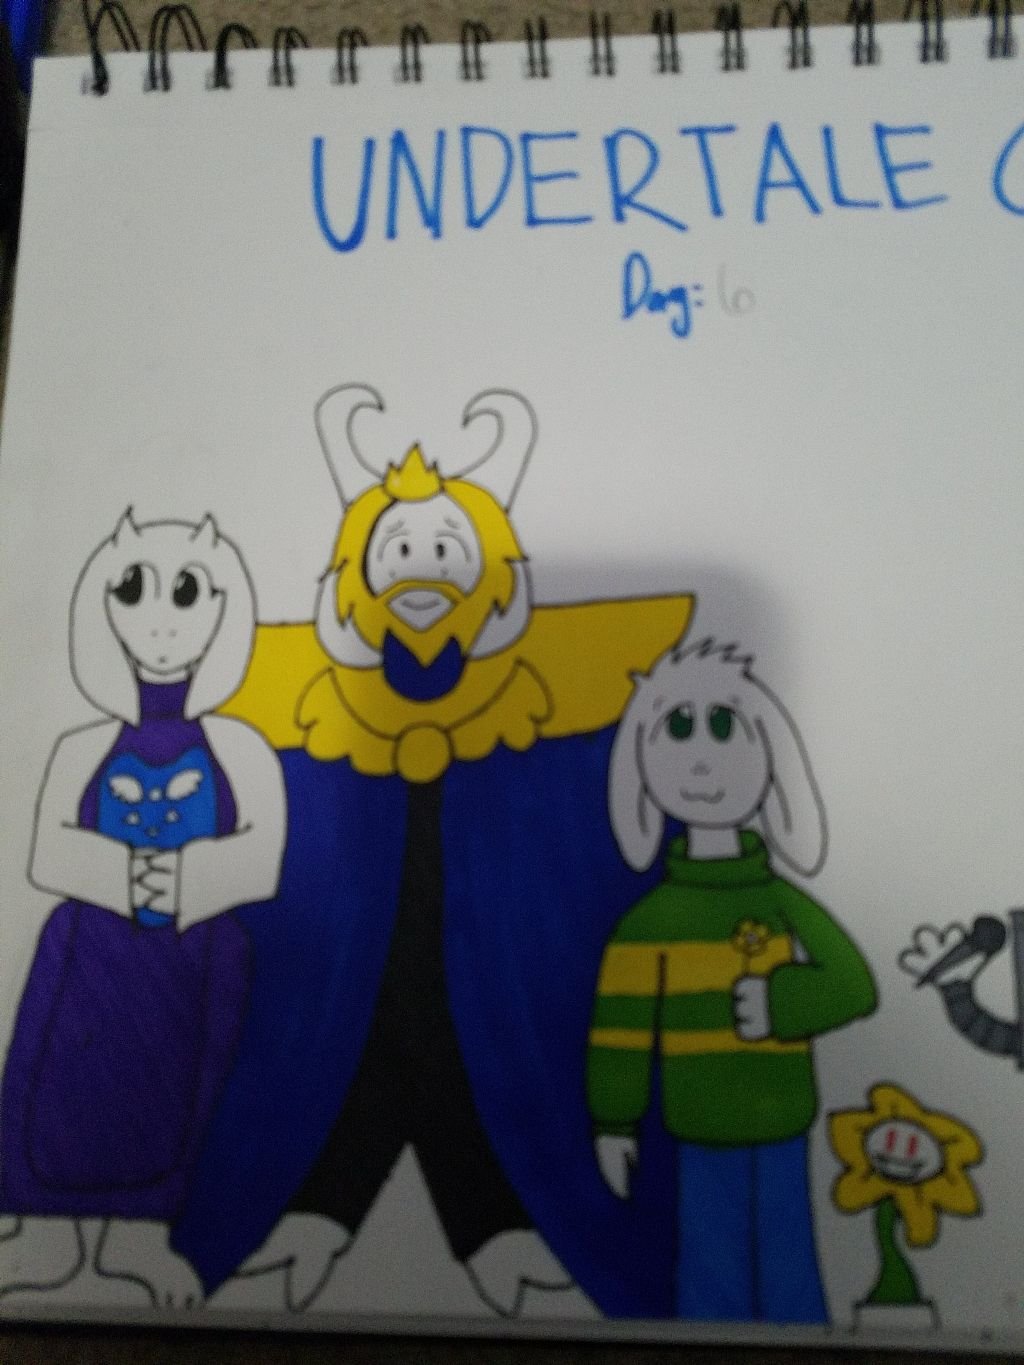 #undertalechallenge #challengeaccepted The Dreemurr family has been completed. I'll try and finish the challenge today...